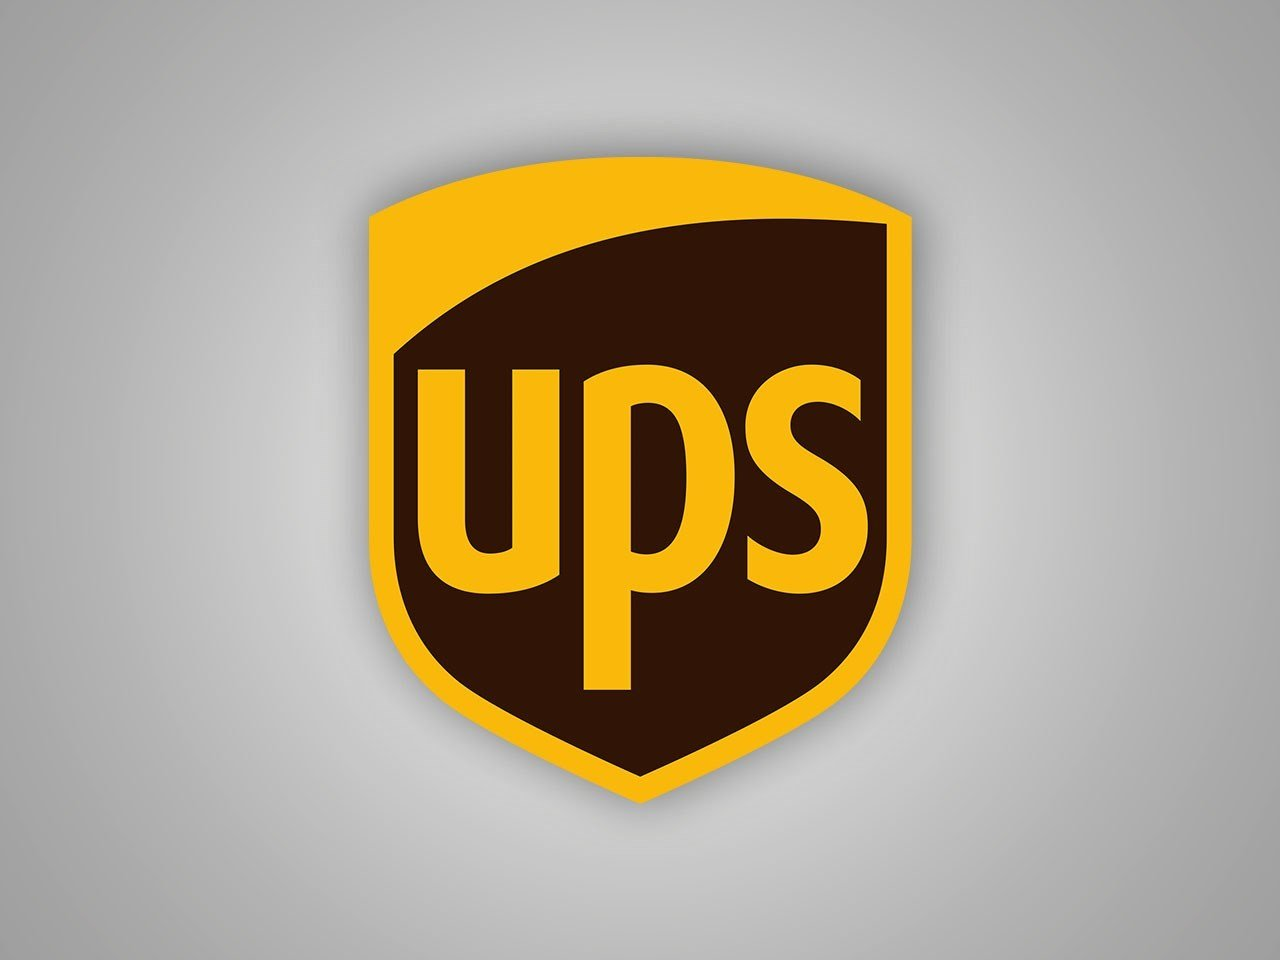 Traders Secrets on United Parcel Service, Inc. (UPS), Rockwell Automation Inc. (ROK)